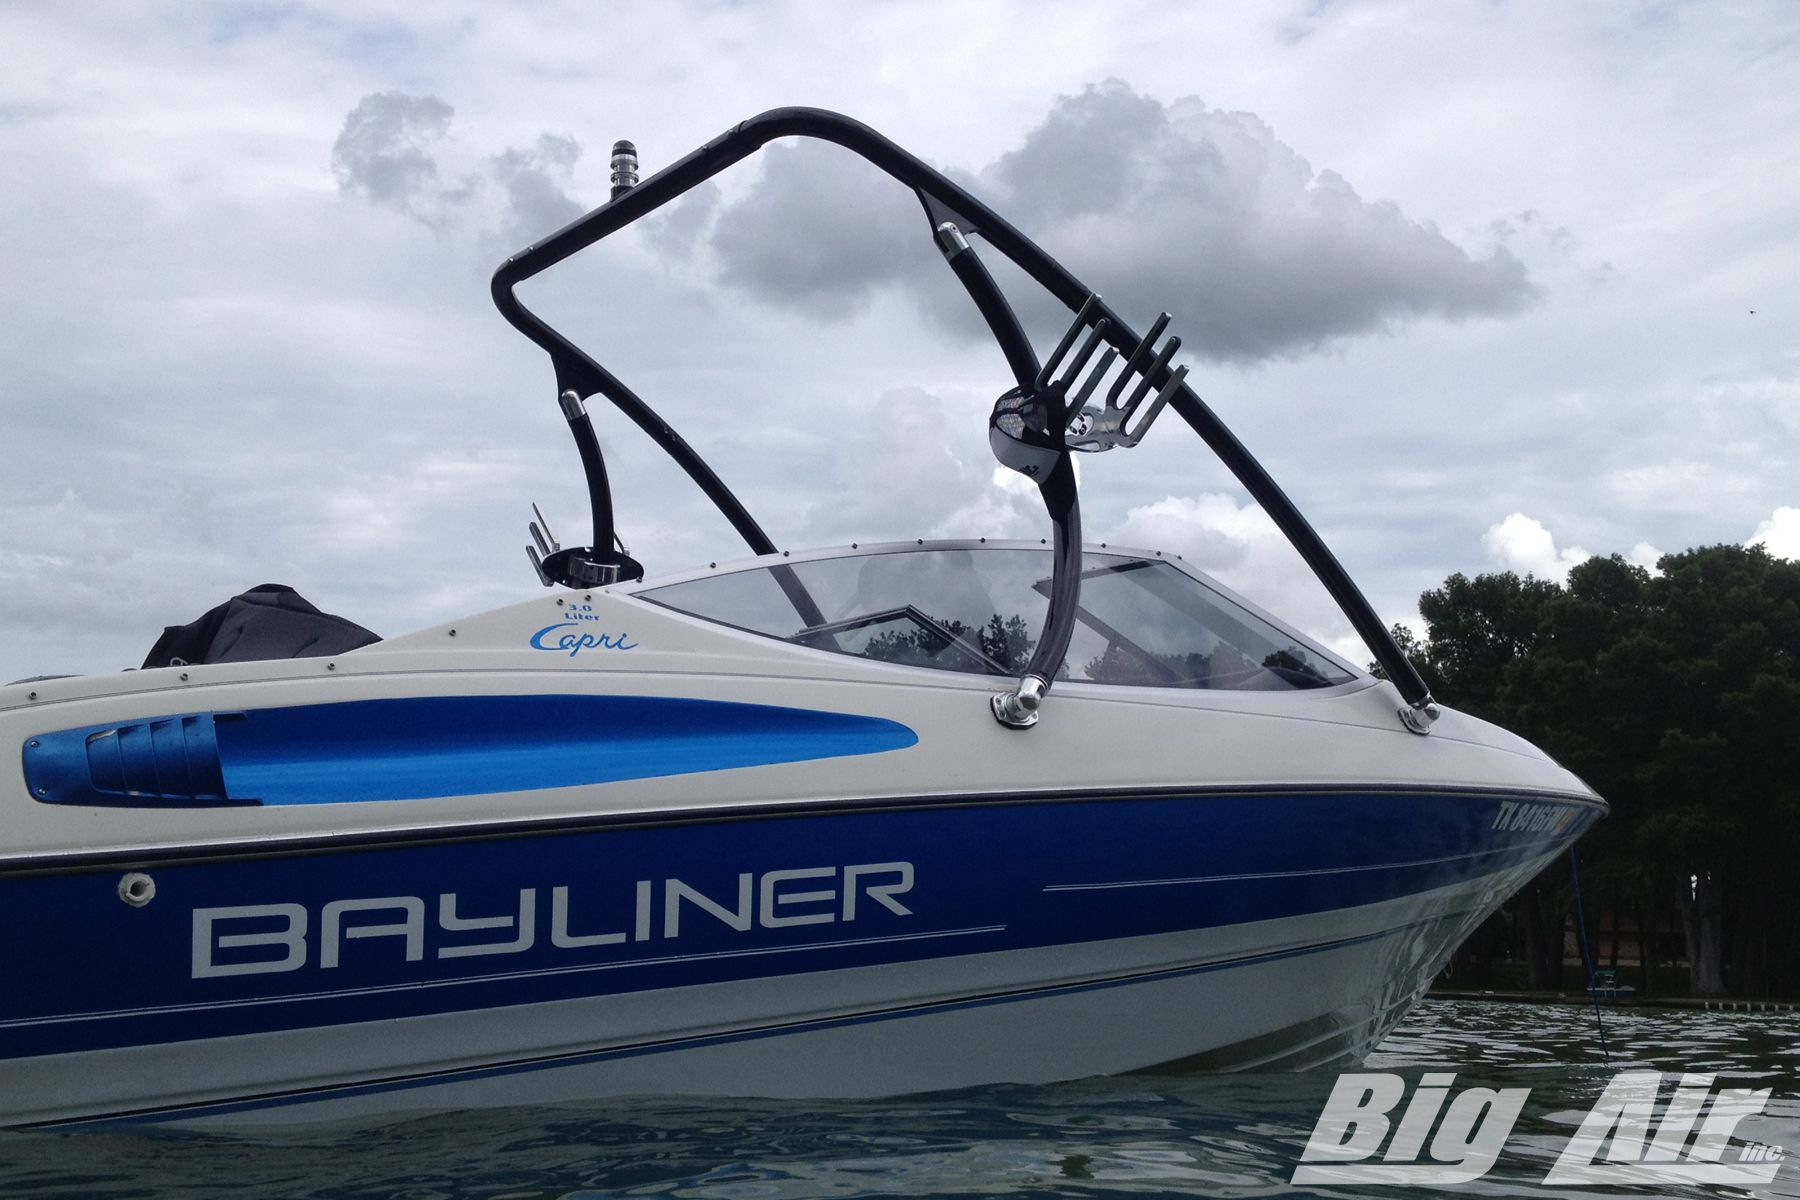 Bayliner Capri boat with Big Air Ice wakeboard tower in